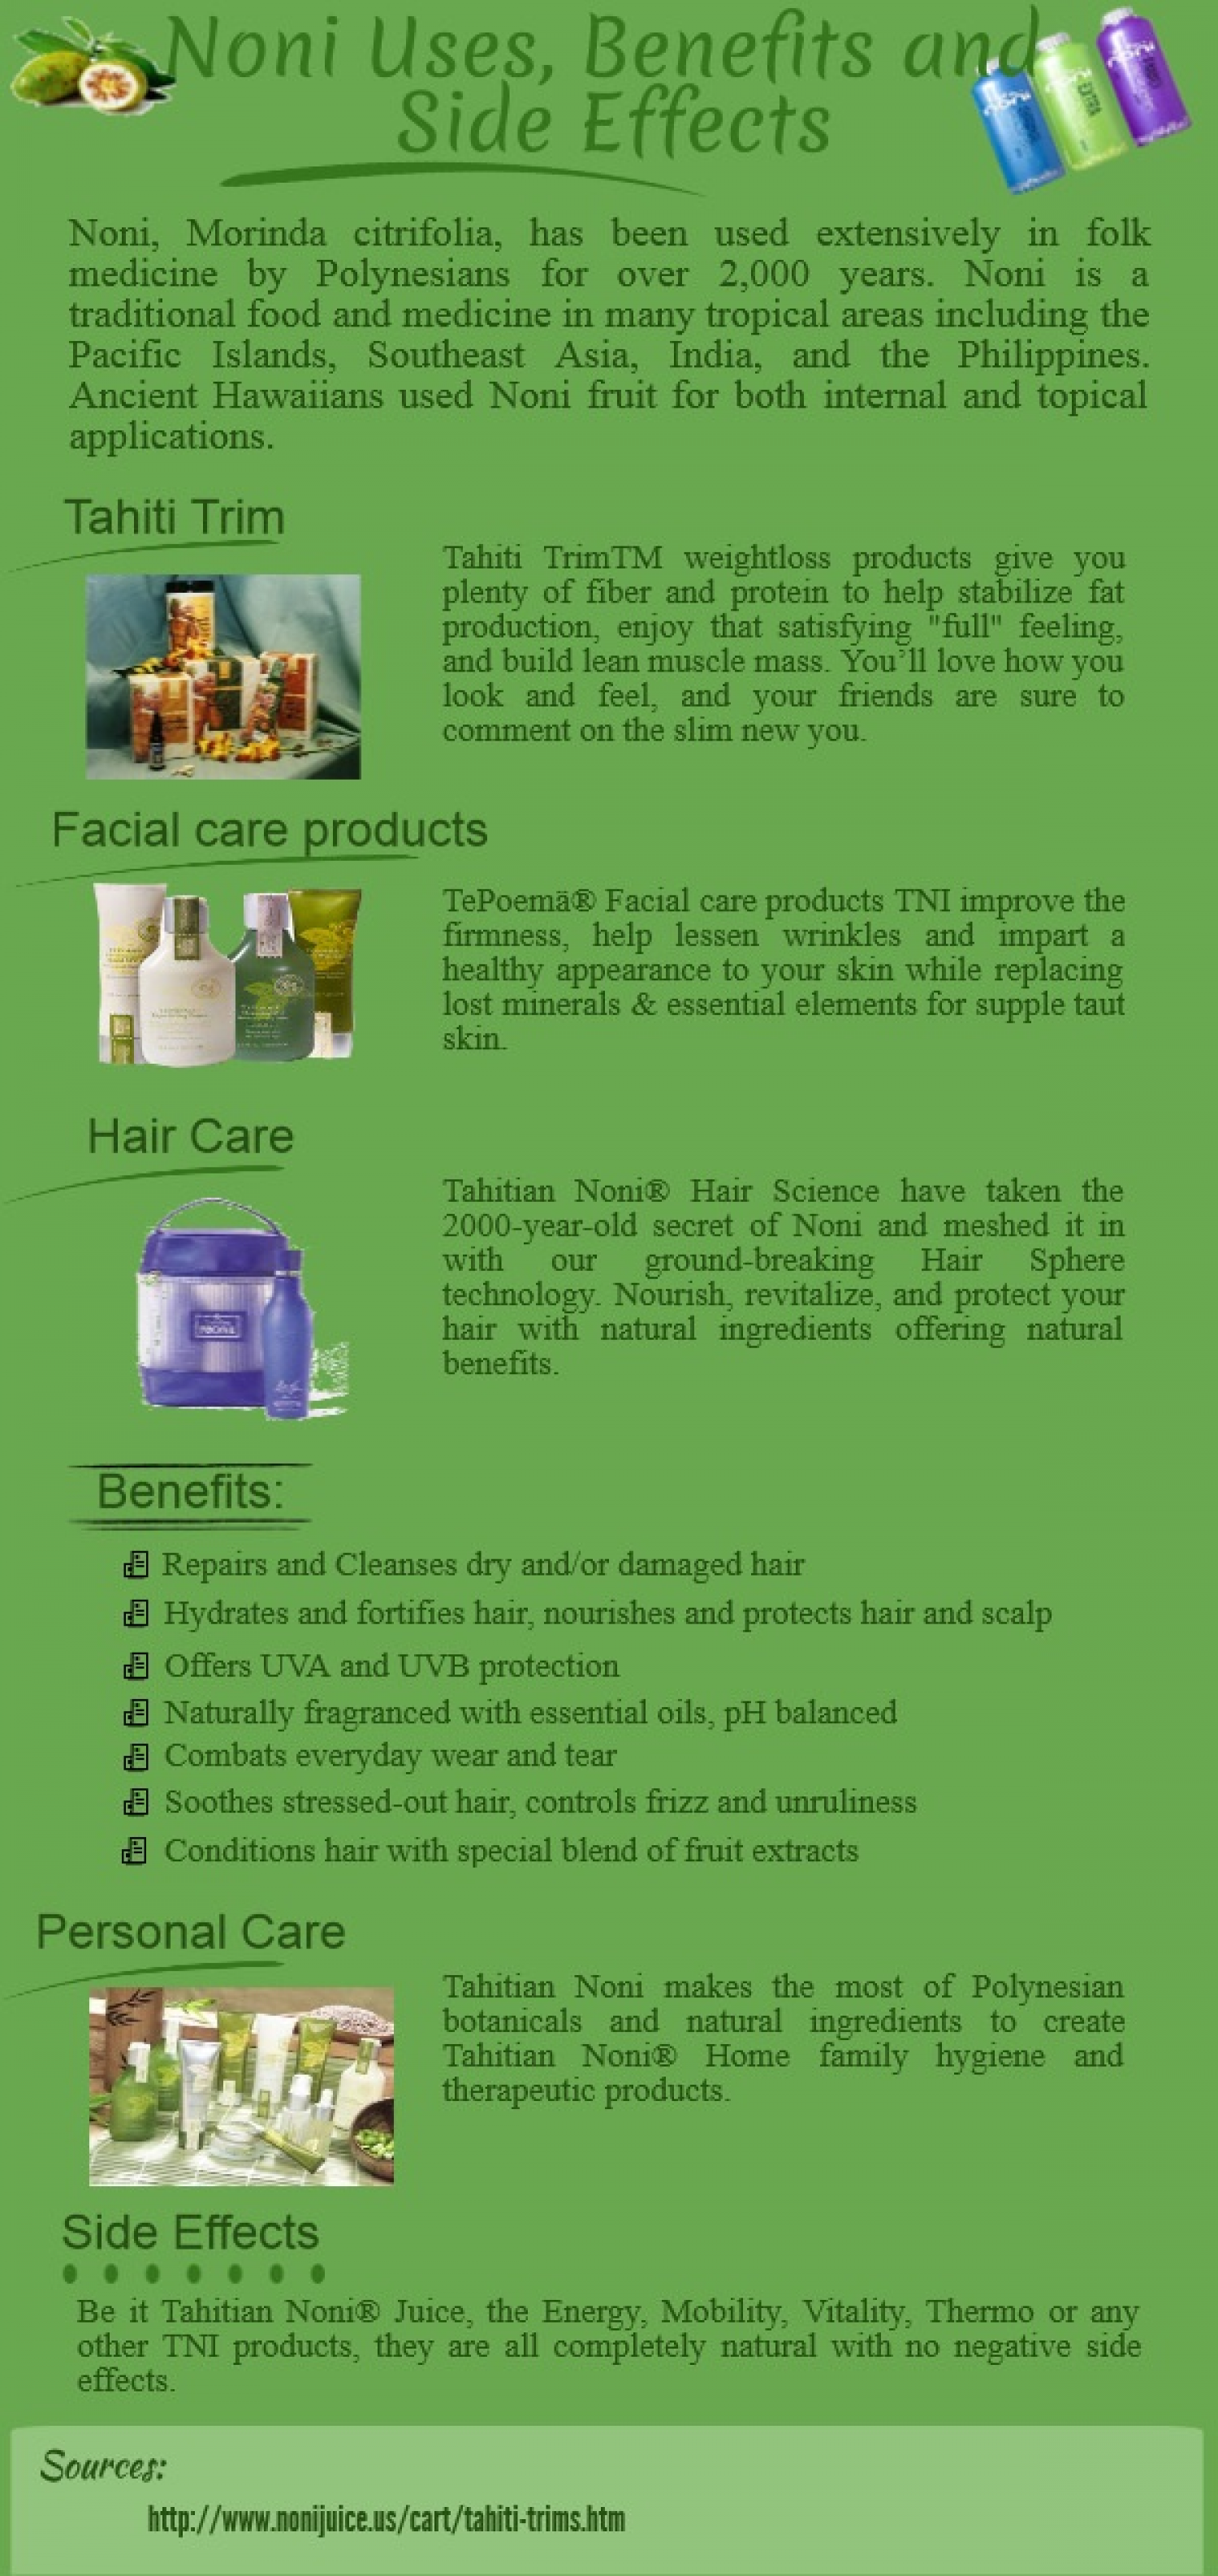 noni uses, benefits & side effects | visual.ly